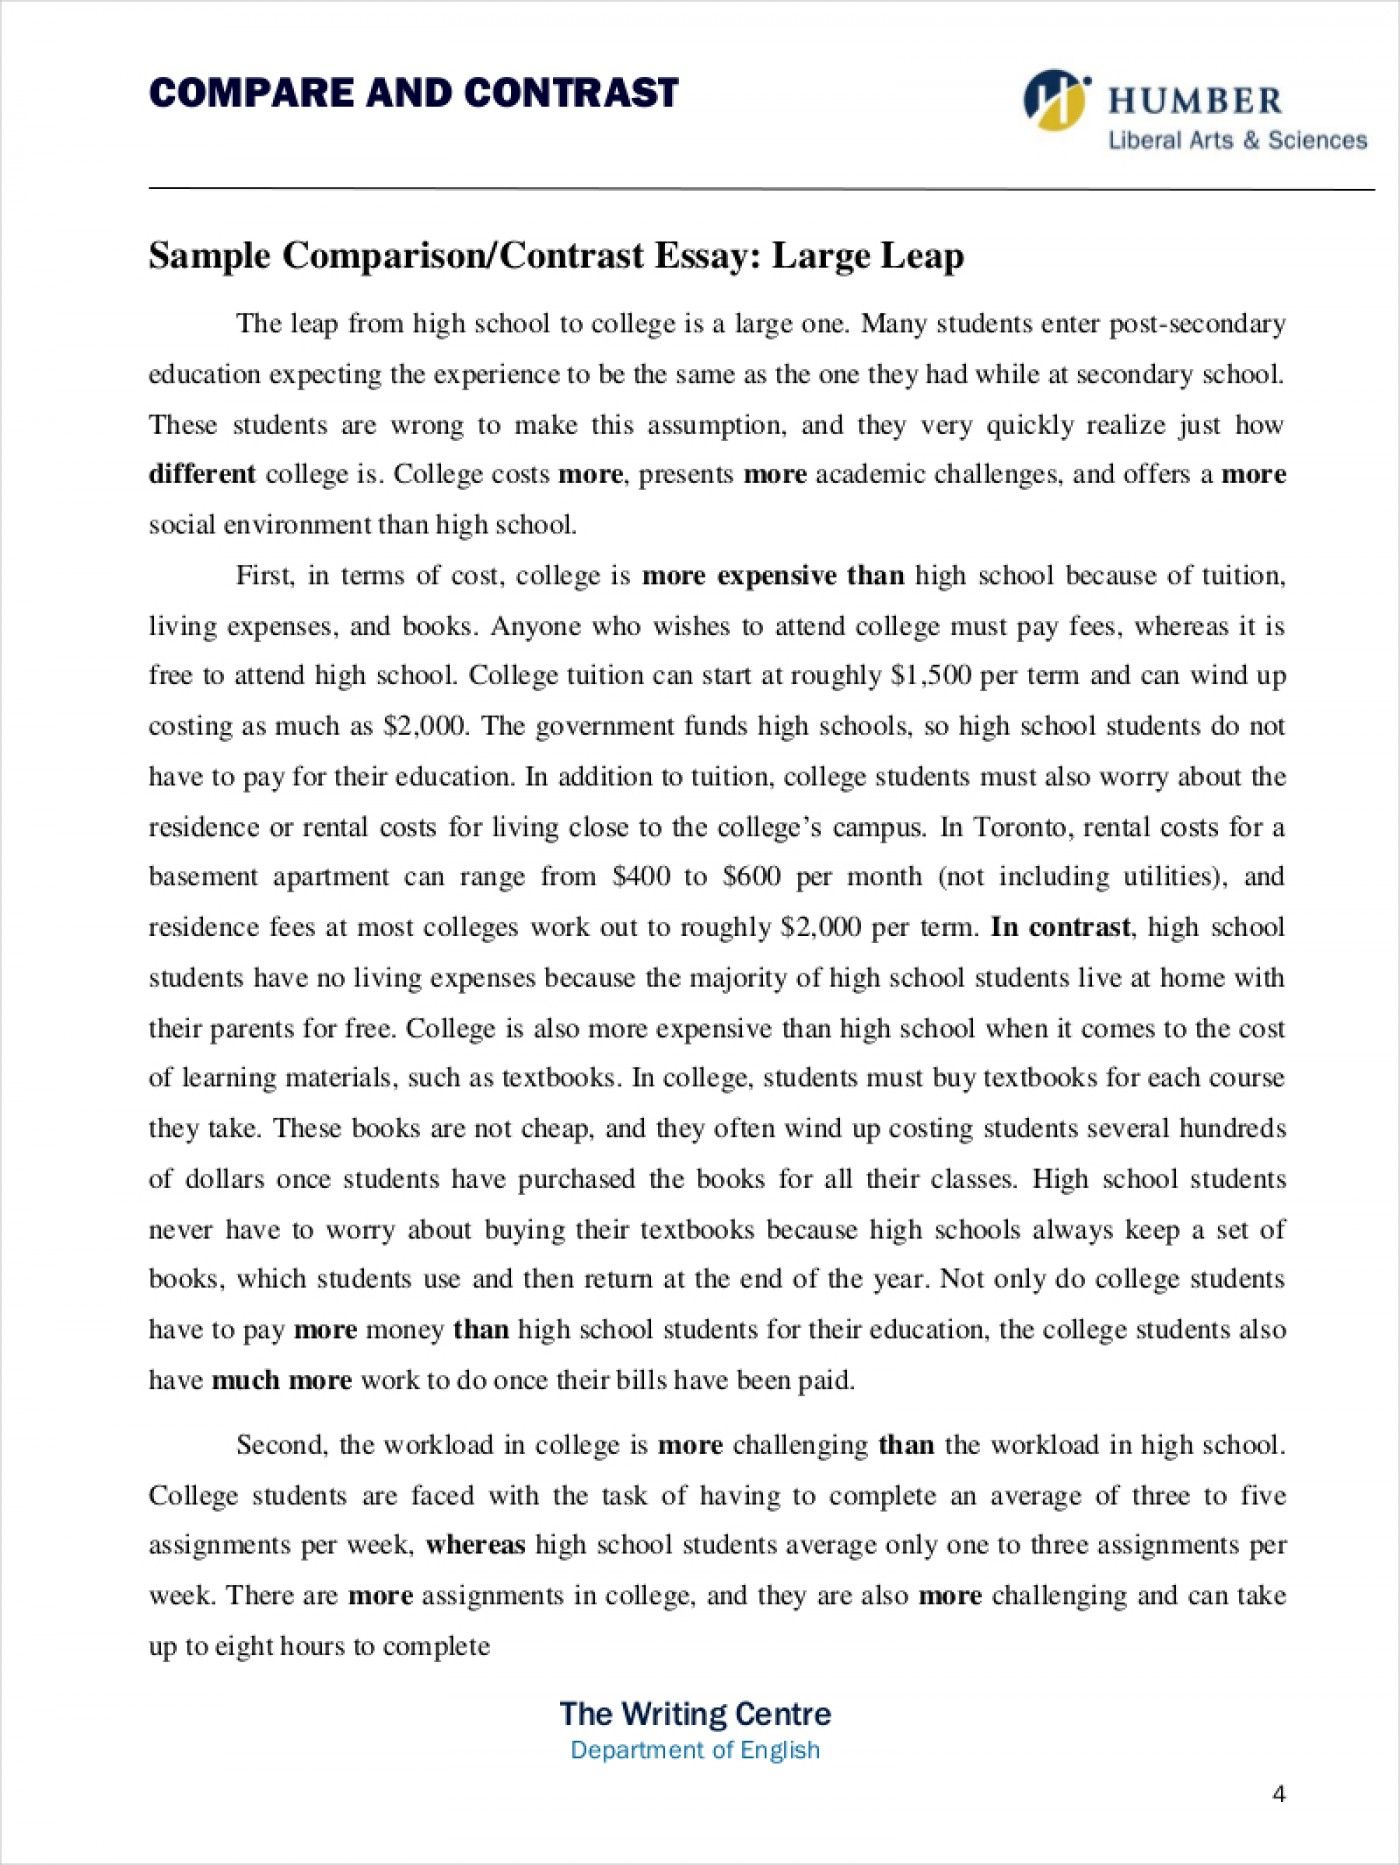 014 How To Write Compare And Contrast Essay Example Comparative Samples Free Pdf Format Download Throughout Examples Comparison Thesis Coles Thecolossus Co Within Ex Outstanding A On Two Poems An Introduction Conclusion For Middle School 1400